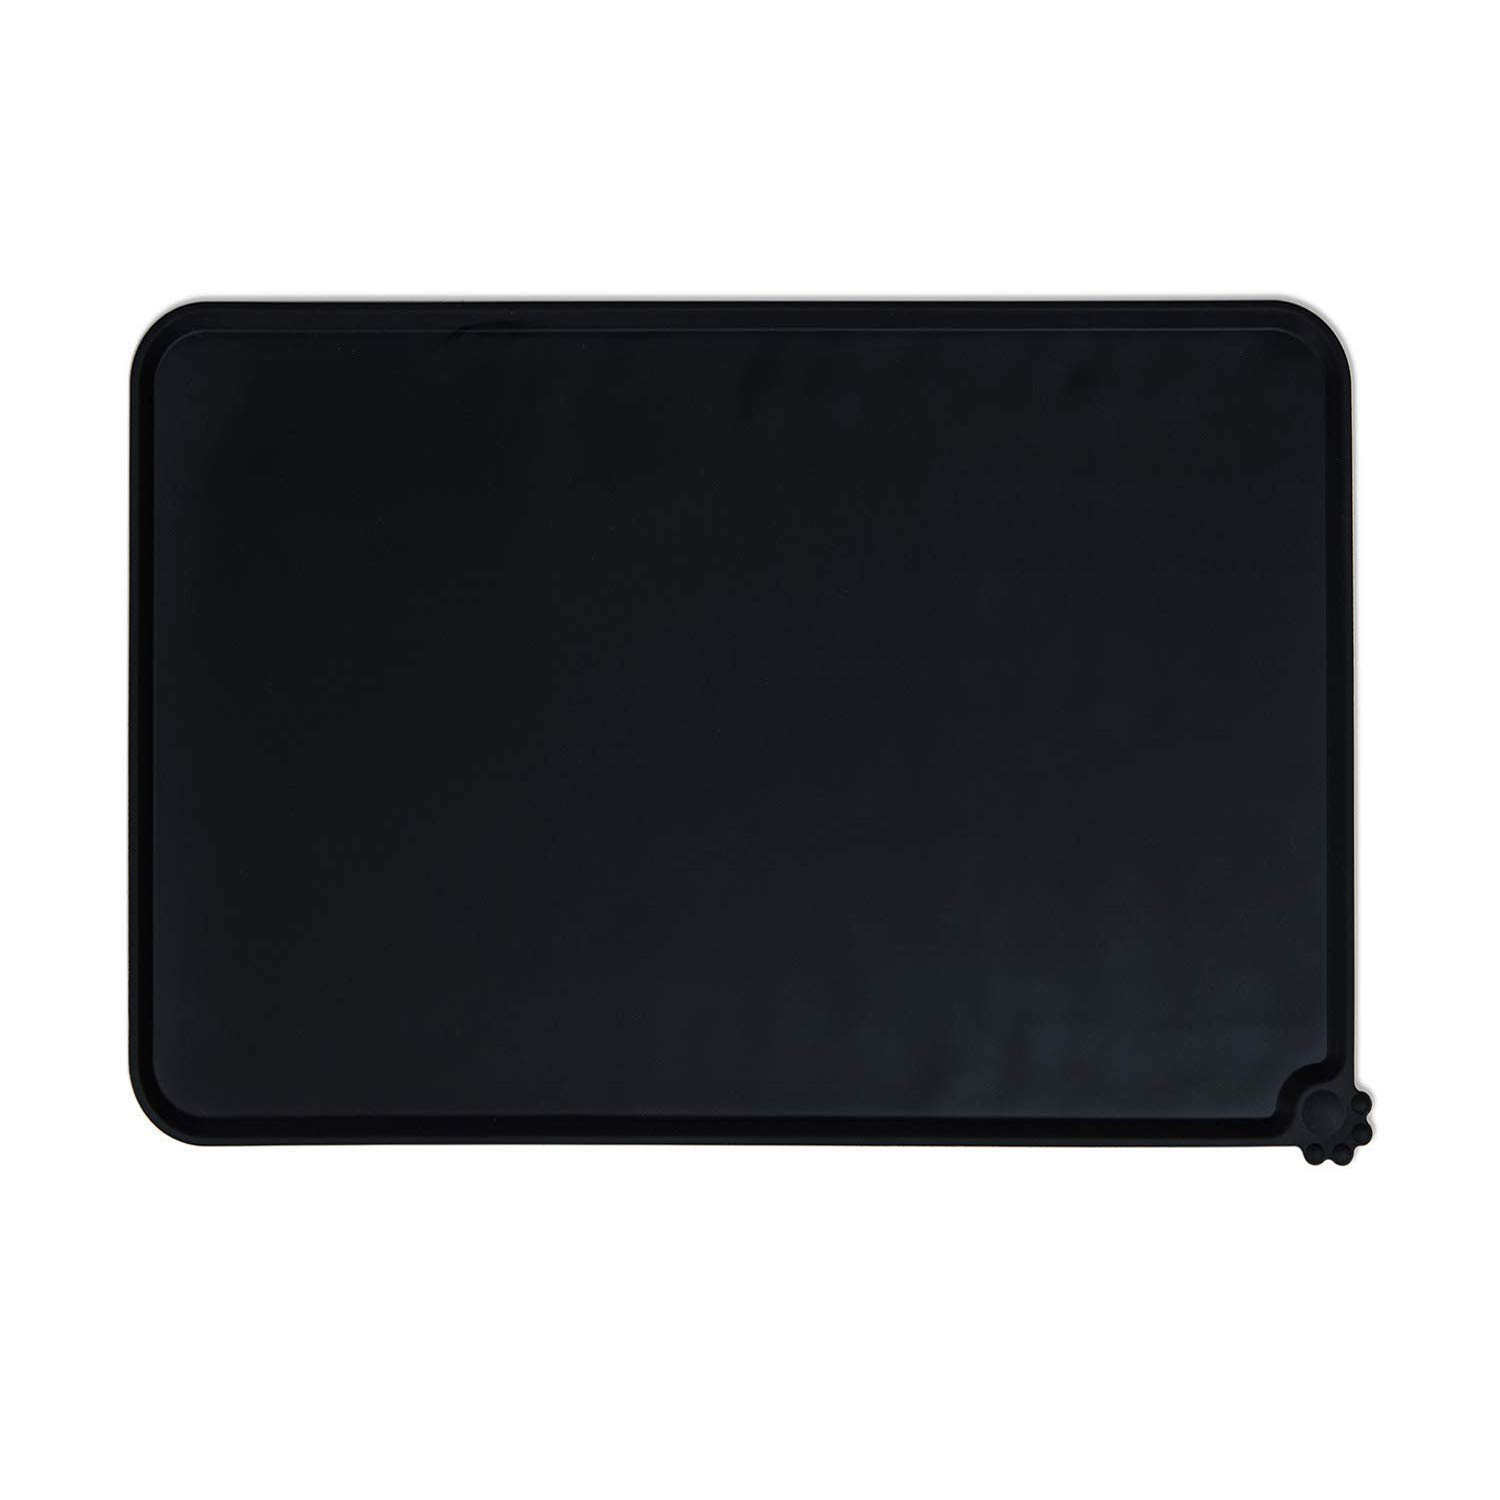 Black ( L ) SACRONS-Silicone Pet Feeding Mat, Pet Bowl Mat Pad, Soft, Waterproof, Easy to Clean, to Prevent Food and Water Spilled on The Ground,Dog & Cat Food Mat (Black (L))